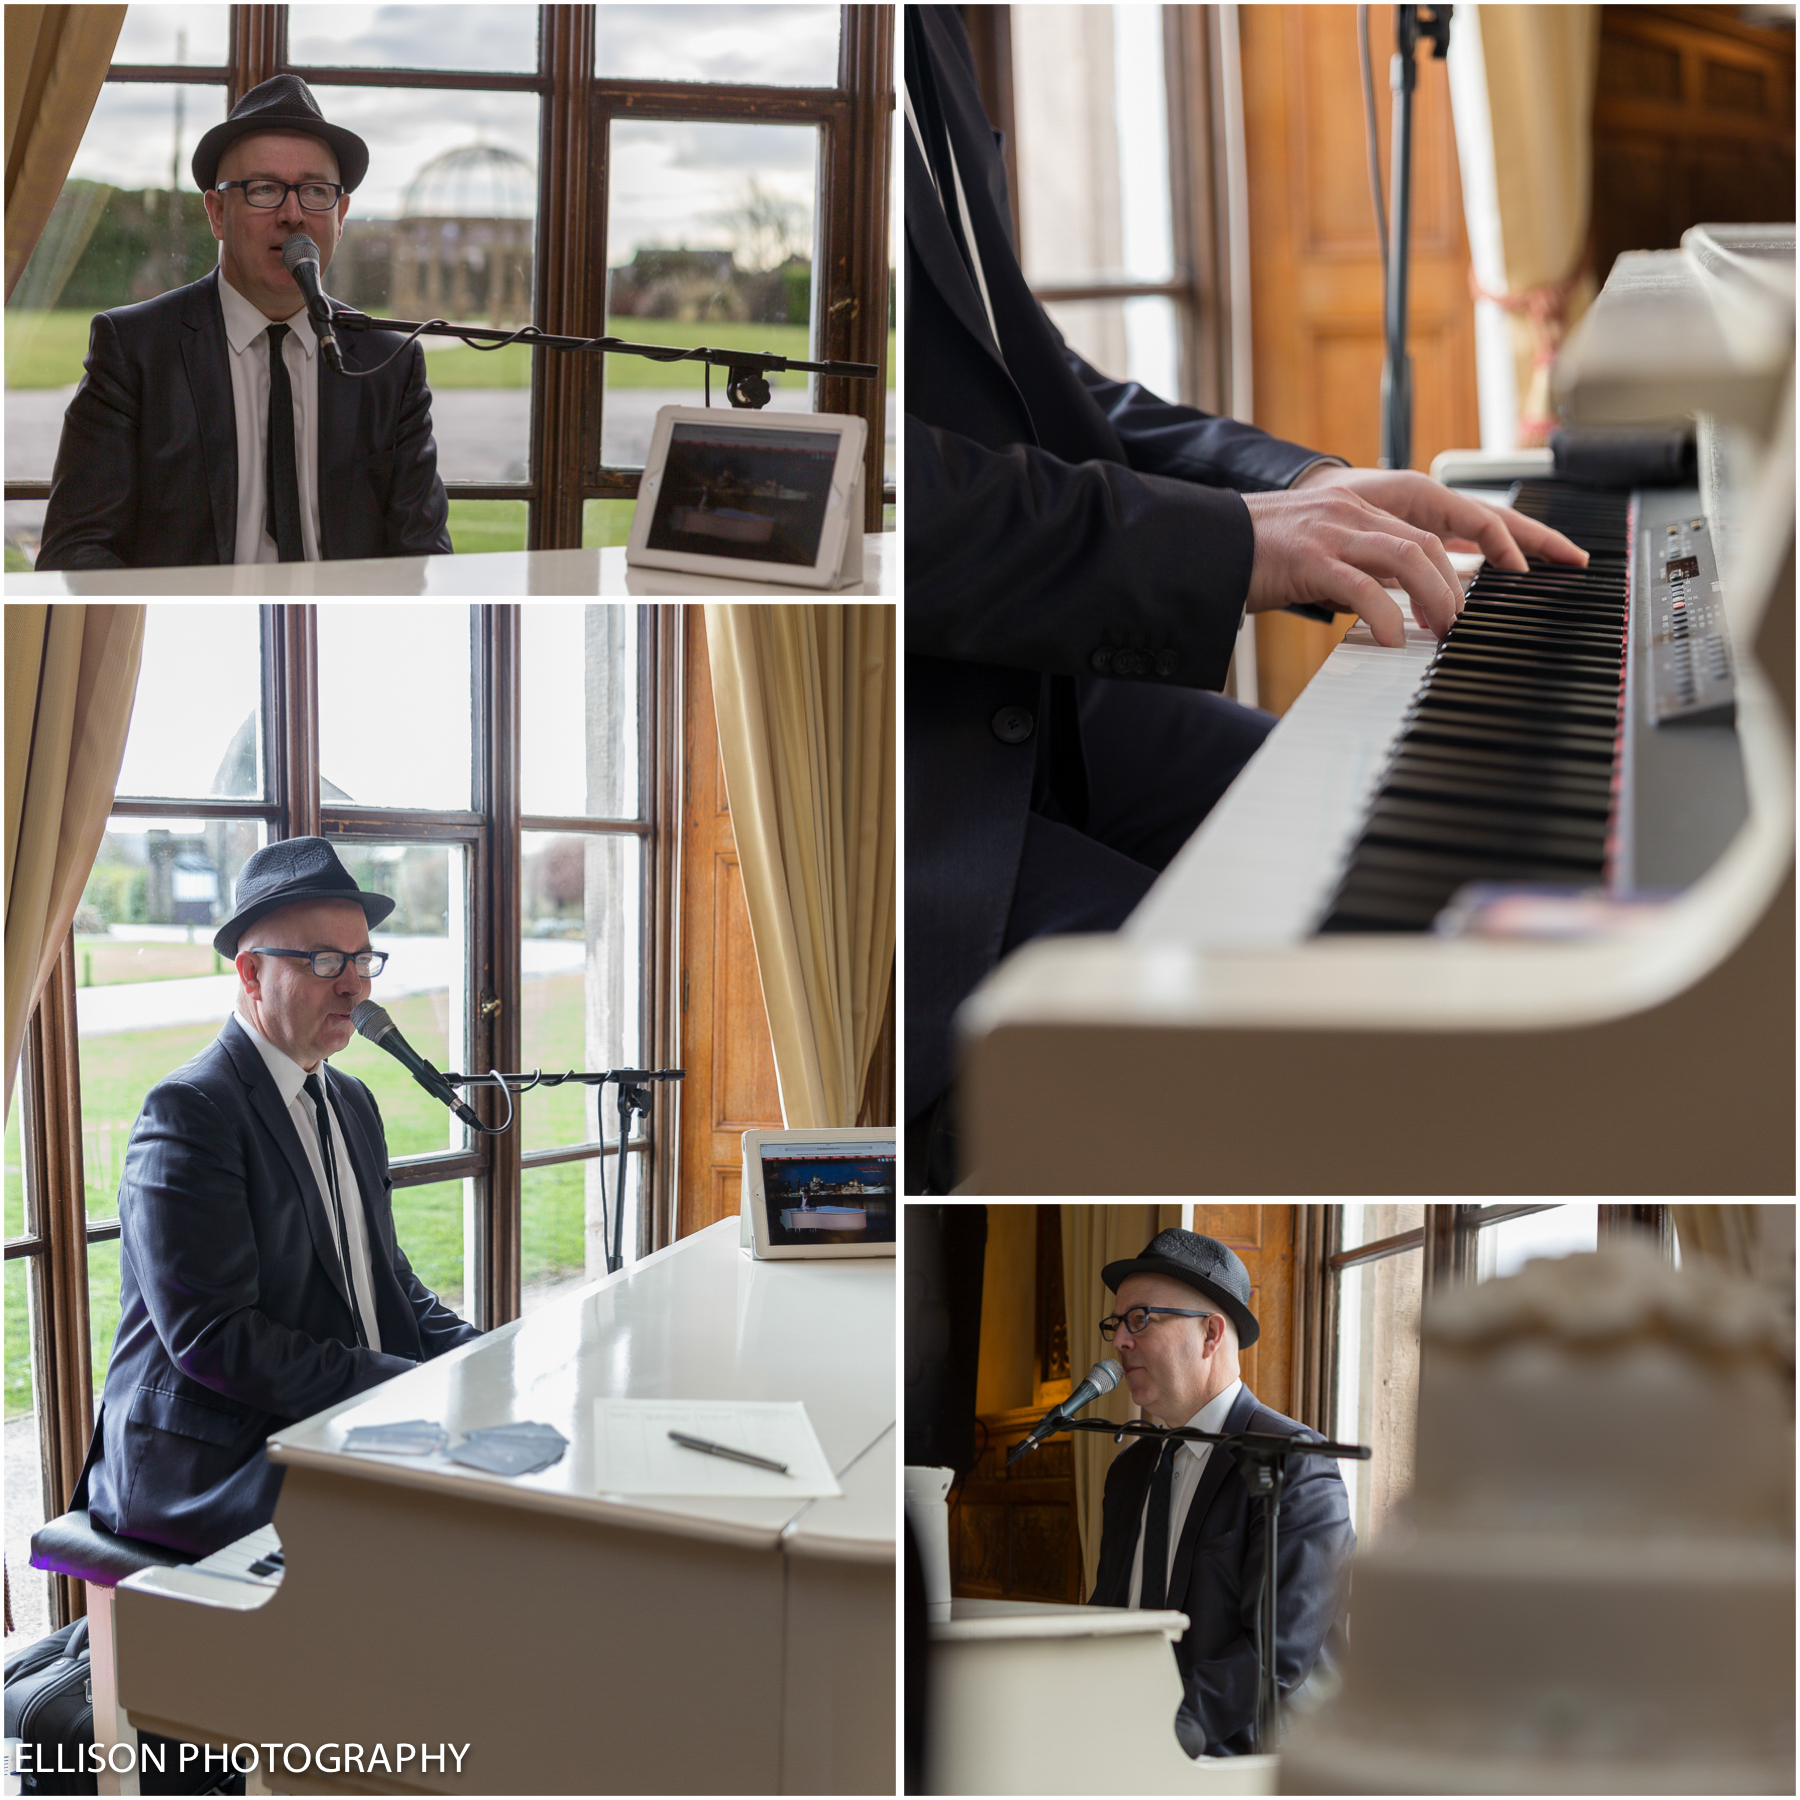 Red Event Leasowe Castle Spring Wedding Fayre Wirral Sunday 19th January 2014 Simon singing Piano Man FB